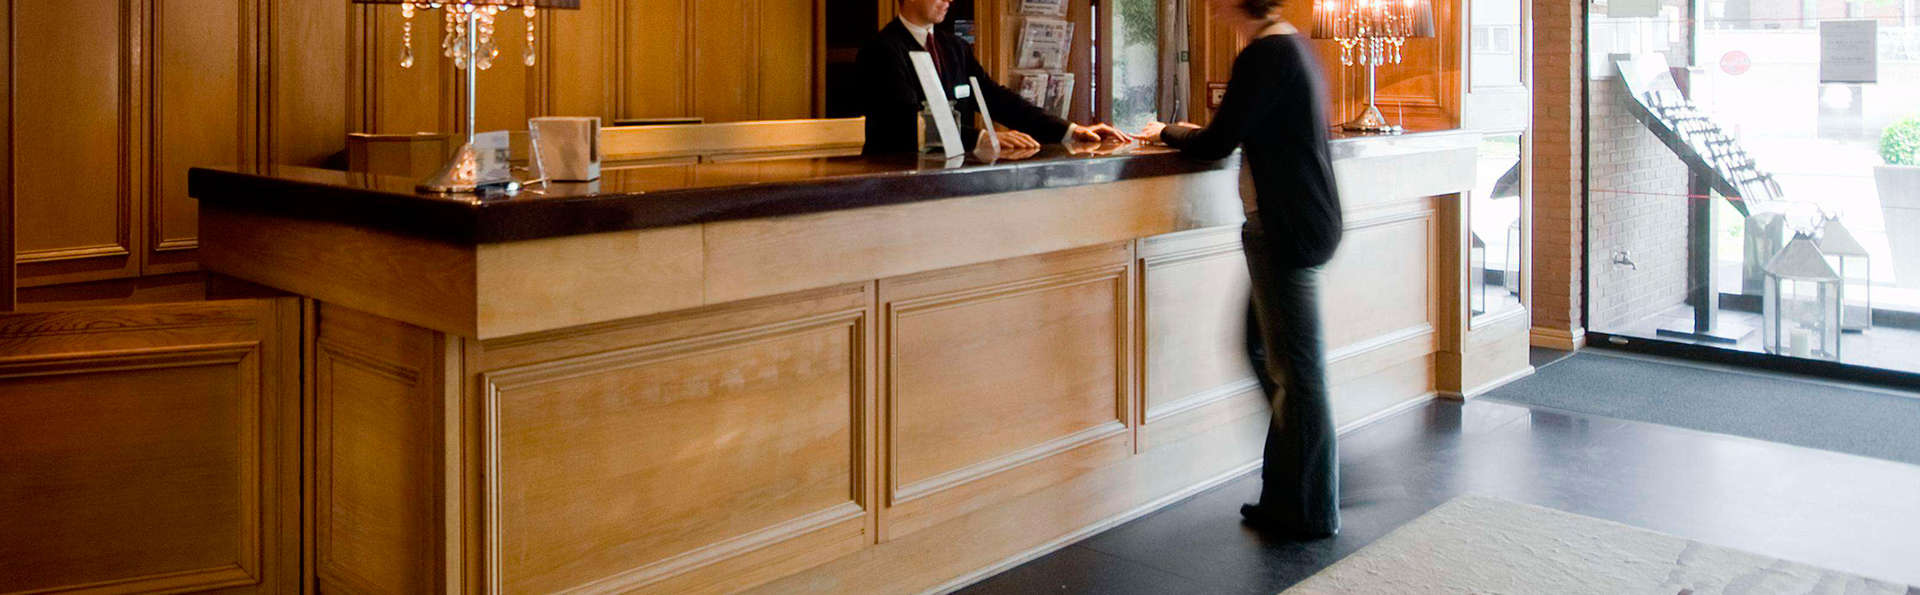 Gresham Belson Hotel Brussels - EDIT_reception.jpg